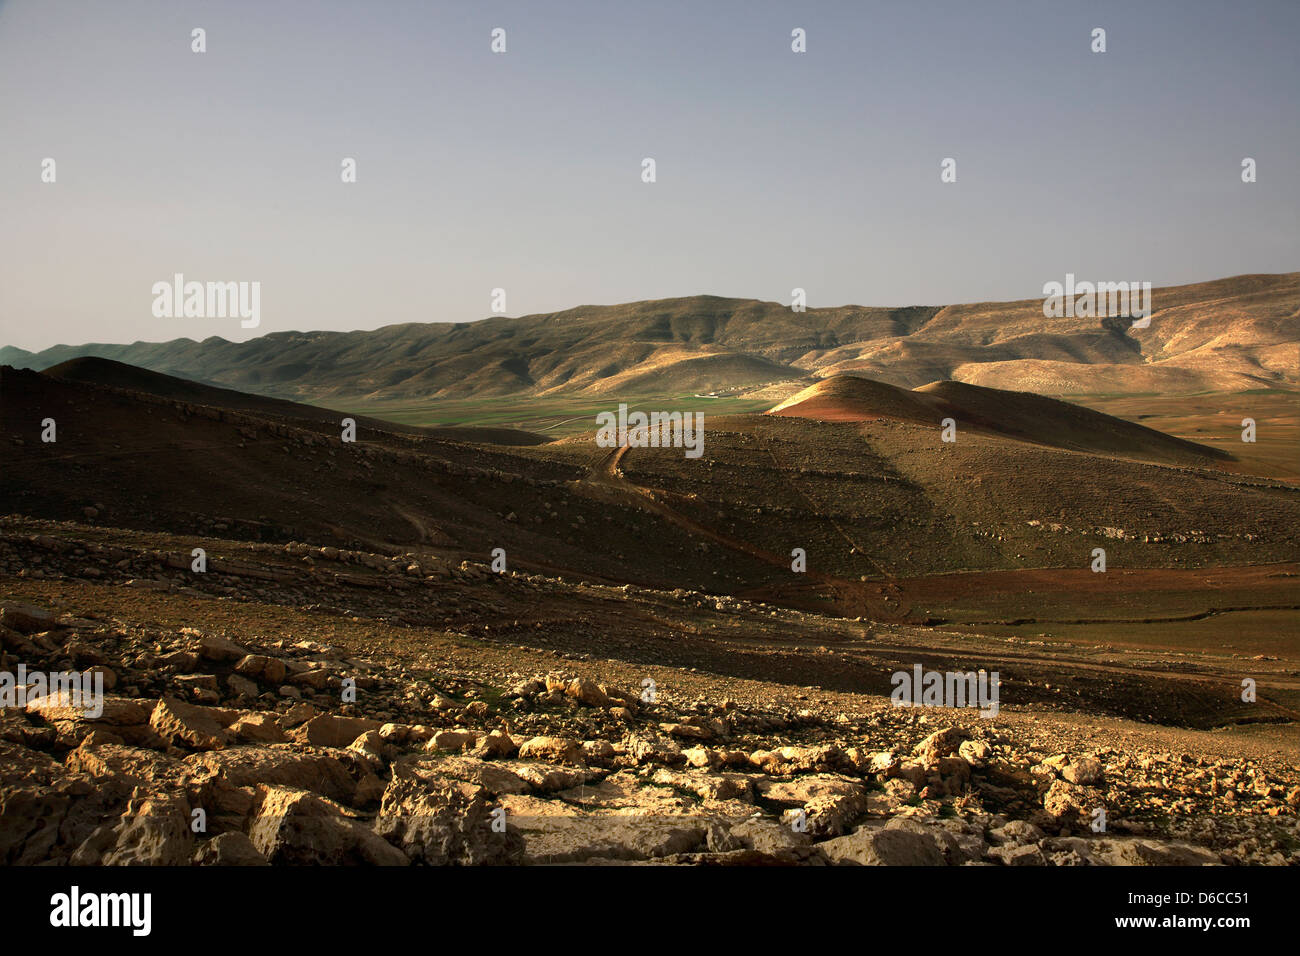 View  across valley to mountains in north east towards Iran border not far from Sulaymaniyah, Iraqi Kurdistan northern - Stock Image